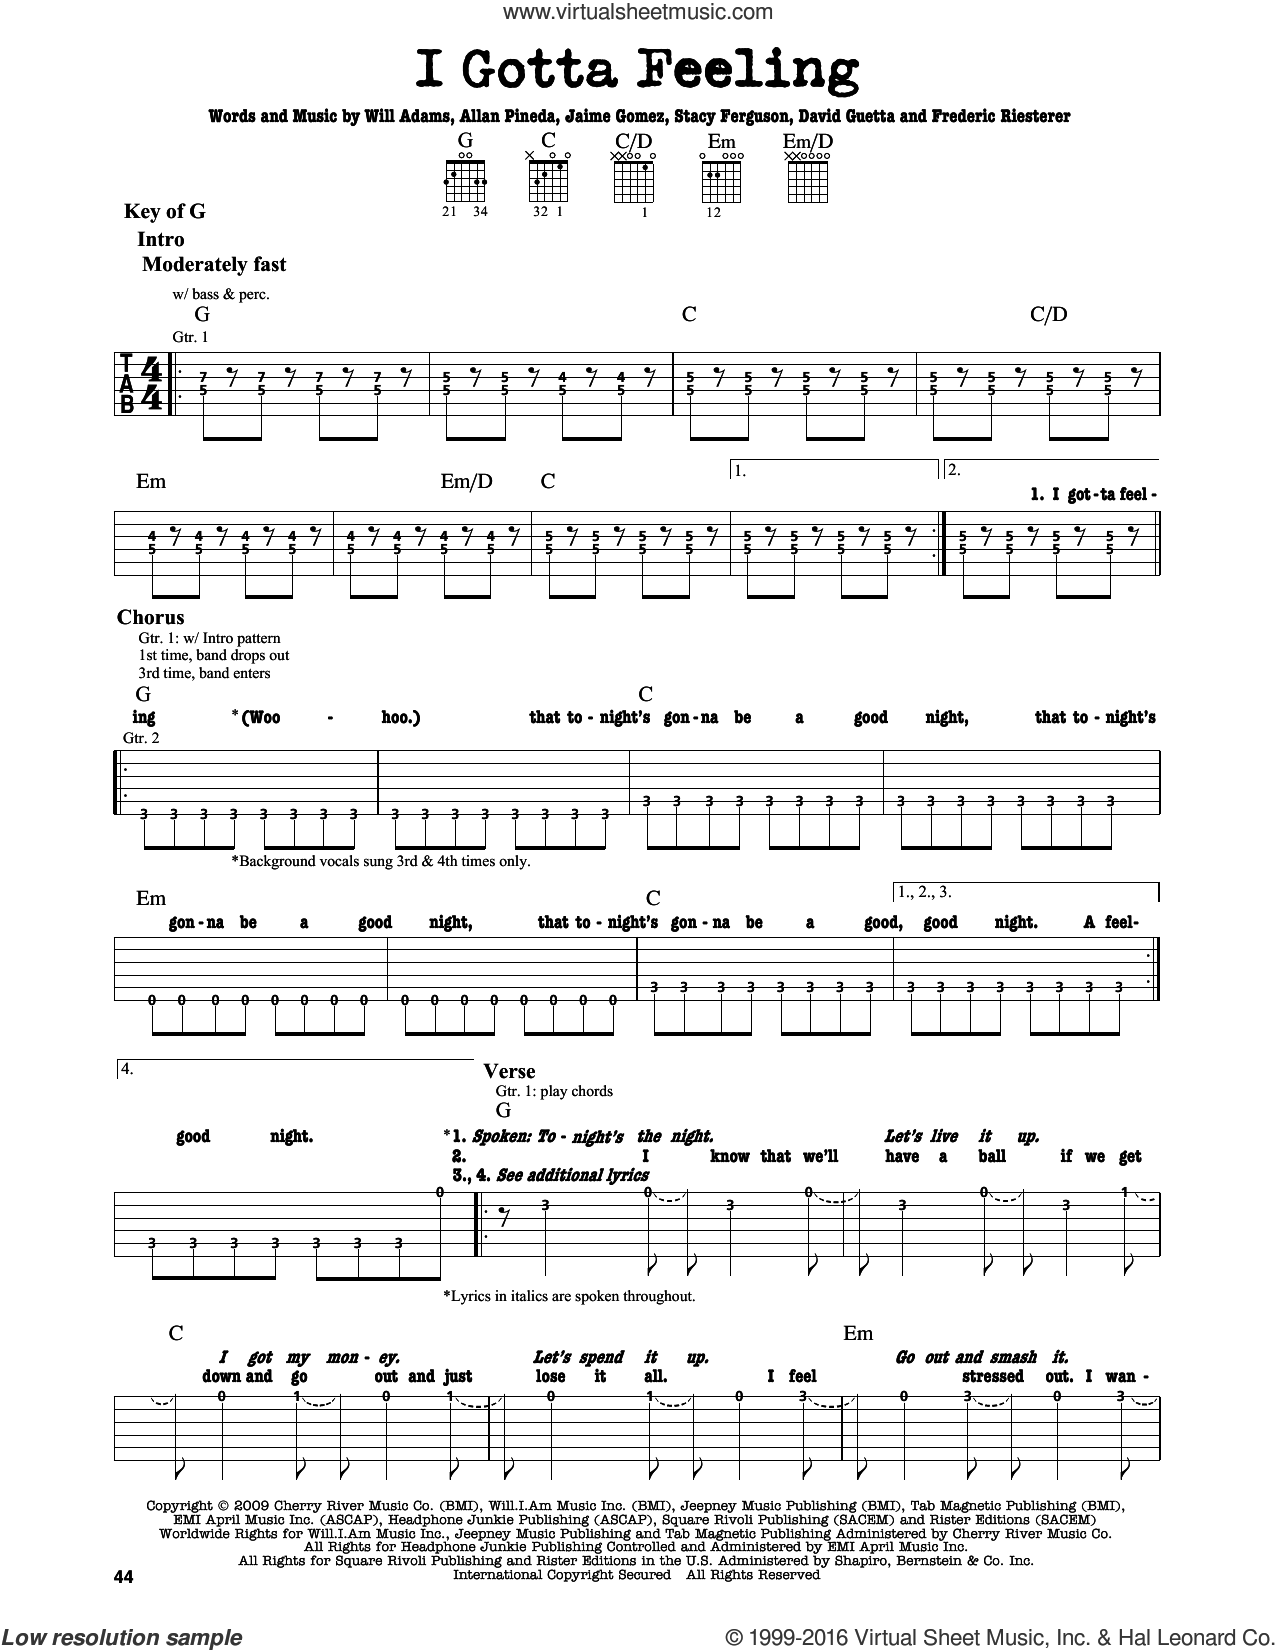 I Gotta Feeling sheet music for guitar solo (lead sheet) by Will Adams, Black Eyed Peas, Allan Pineda, David Guetta, Frederic Riesterer and Stacy Ferguson. Score Image Preview.